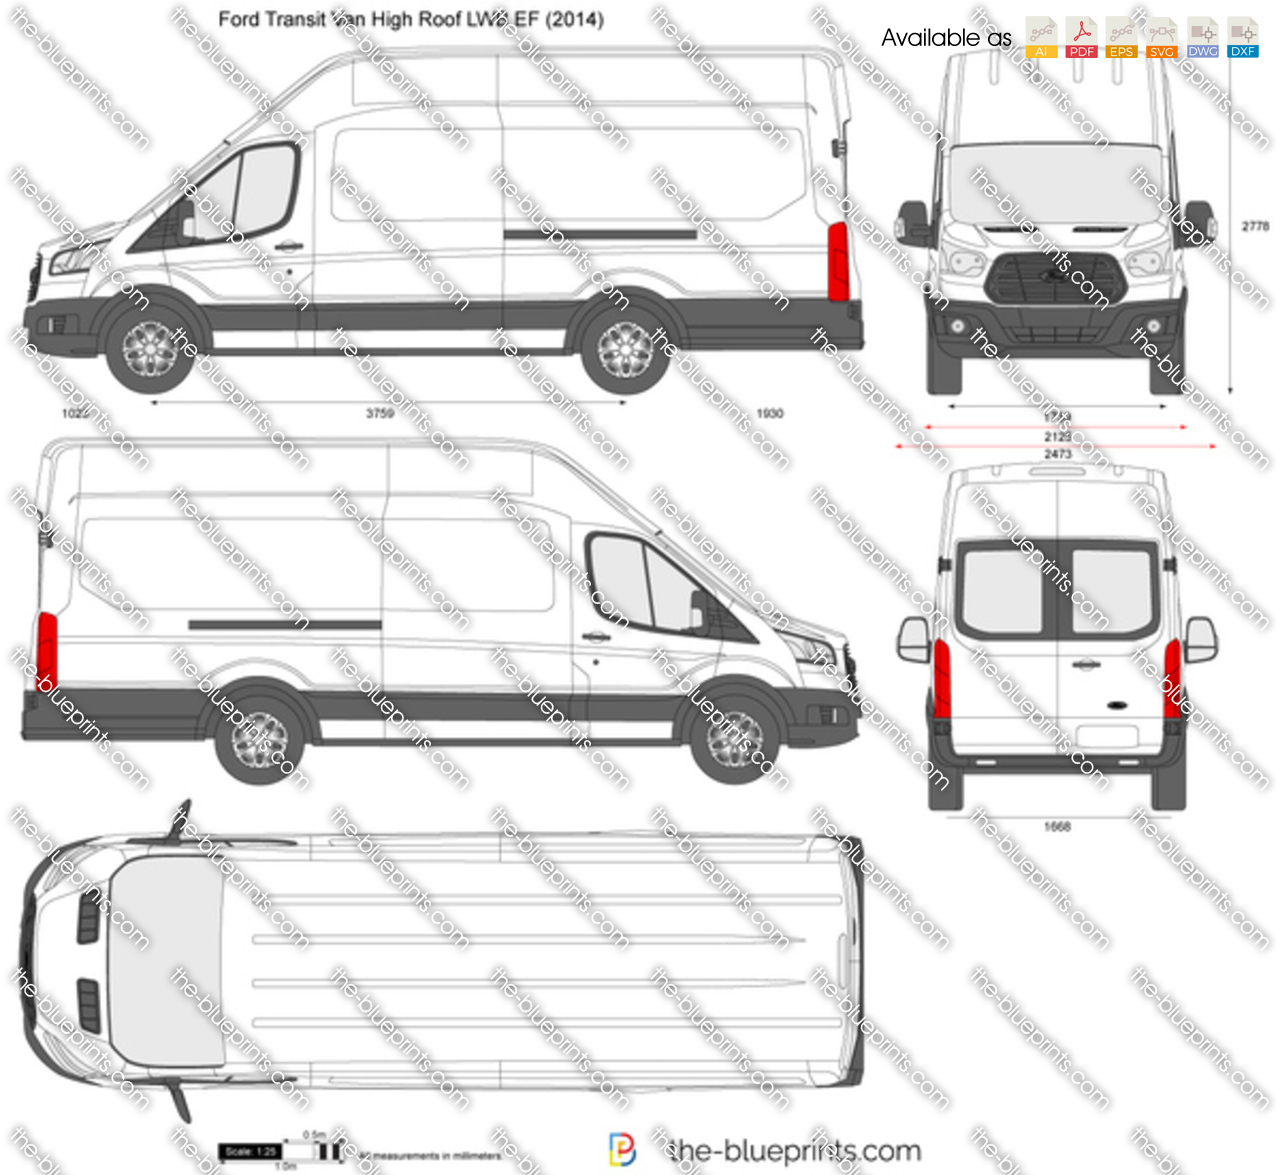 6e23bf2181 ford transit diagram data wiring diagram update ford model t diagram ford  transit diagram wiring diagram